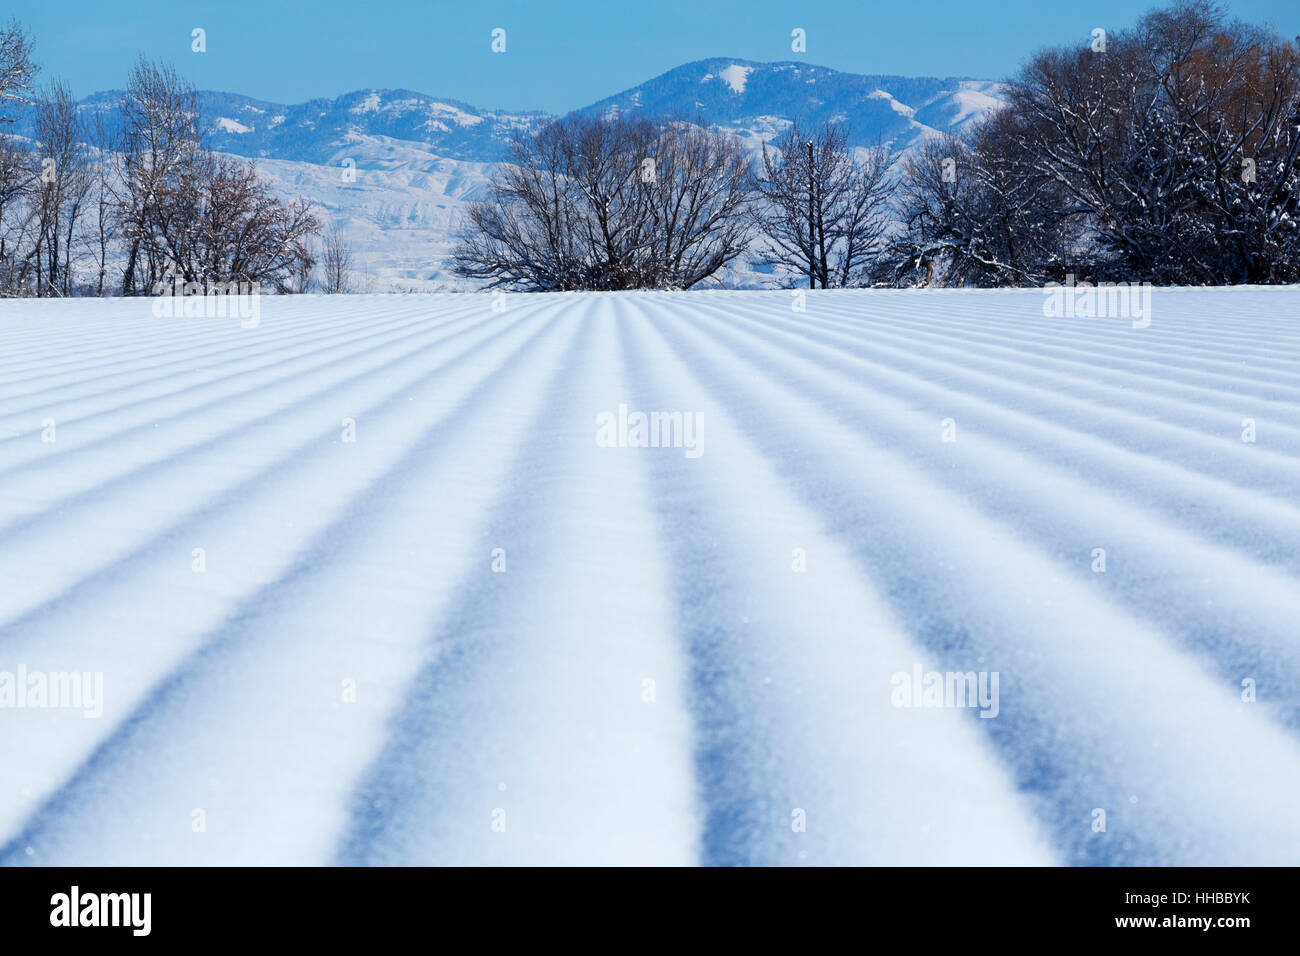 Leading lines in fresh snow - Stock Image